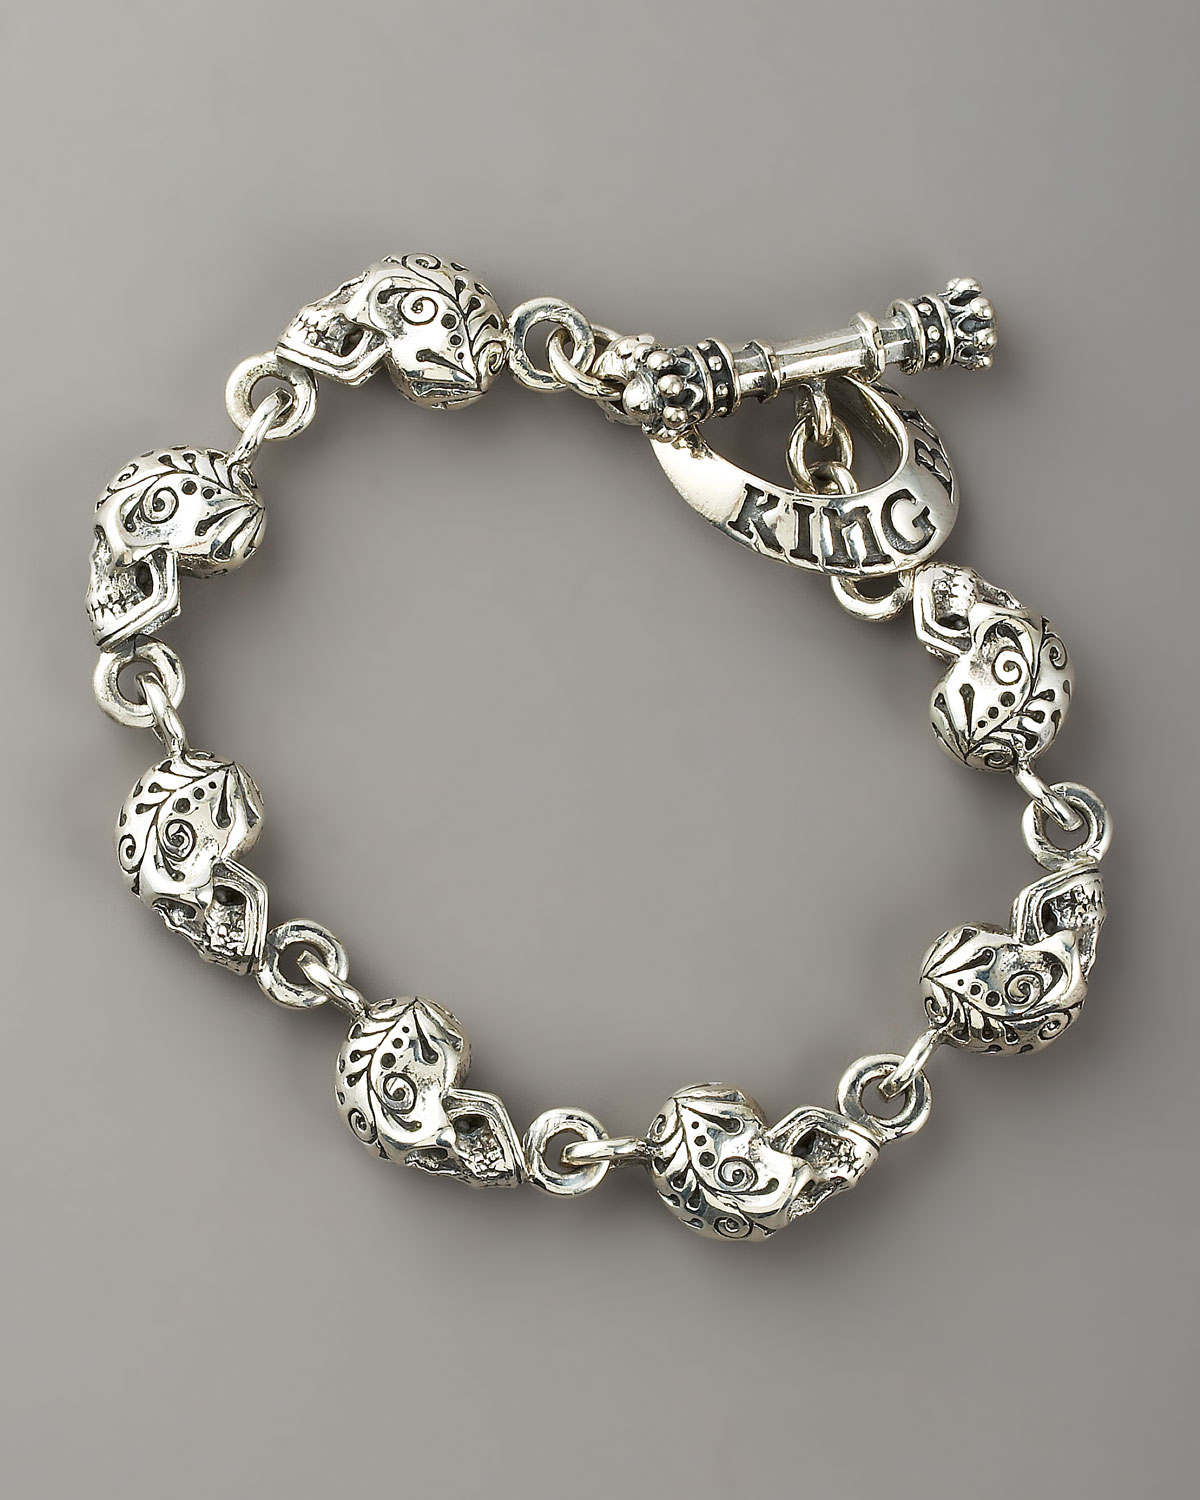 King Baby Studio Day Of The Dead Skull Bracelet In Silver